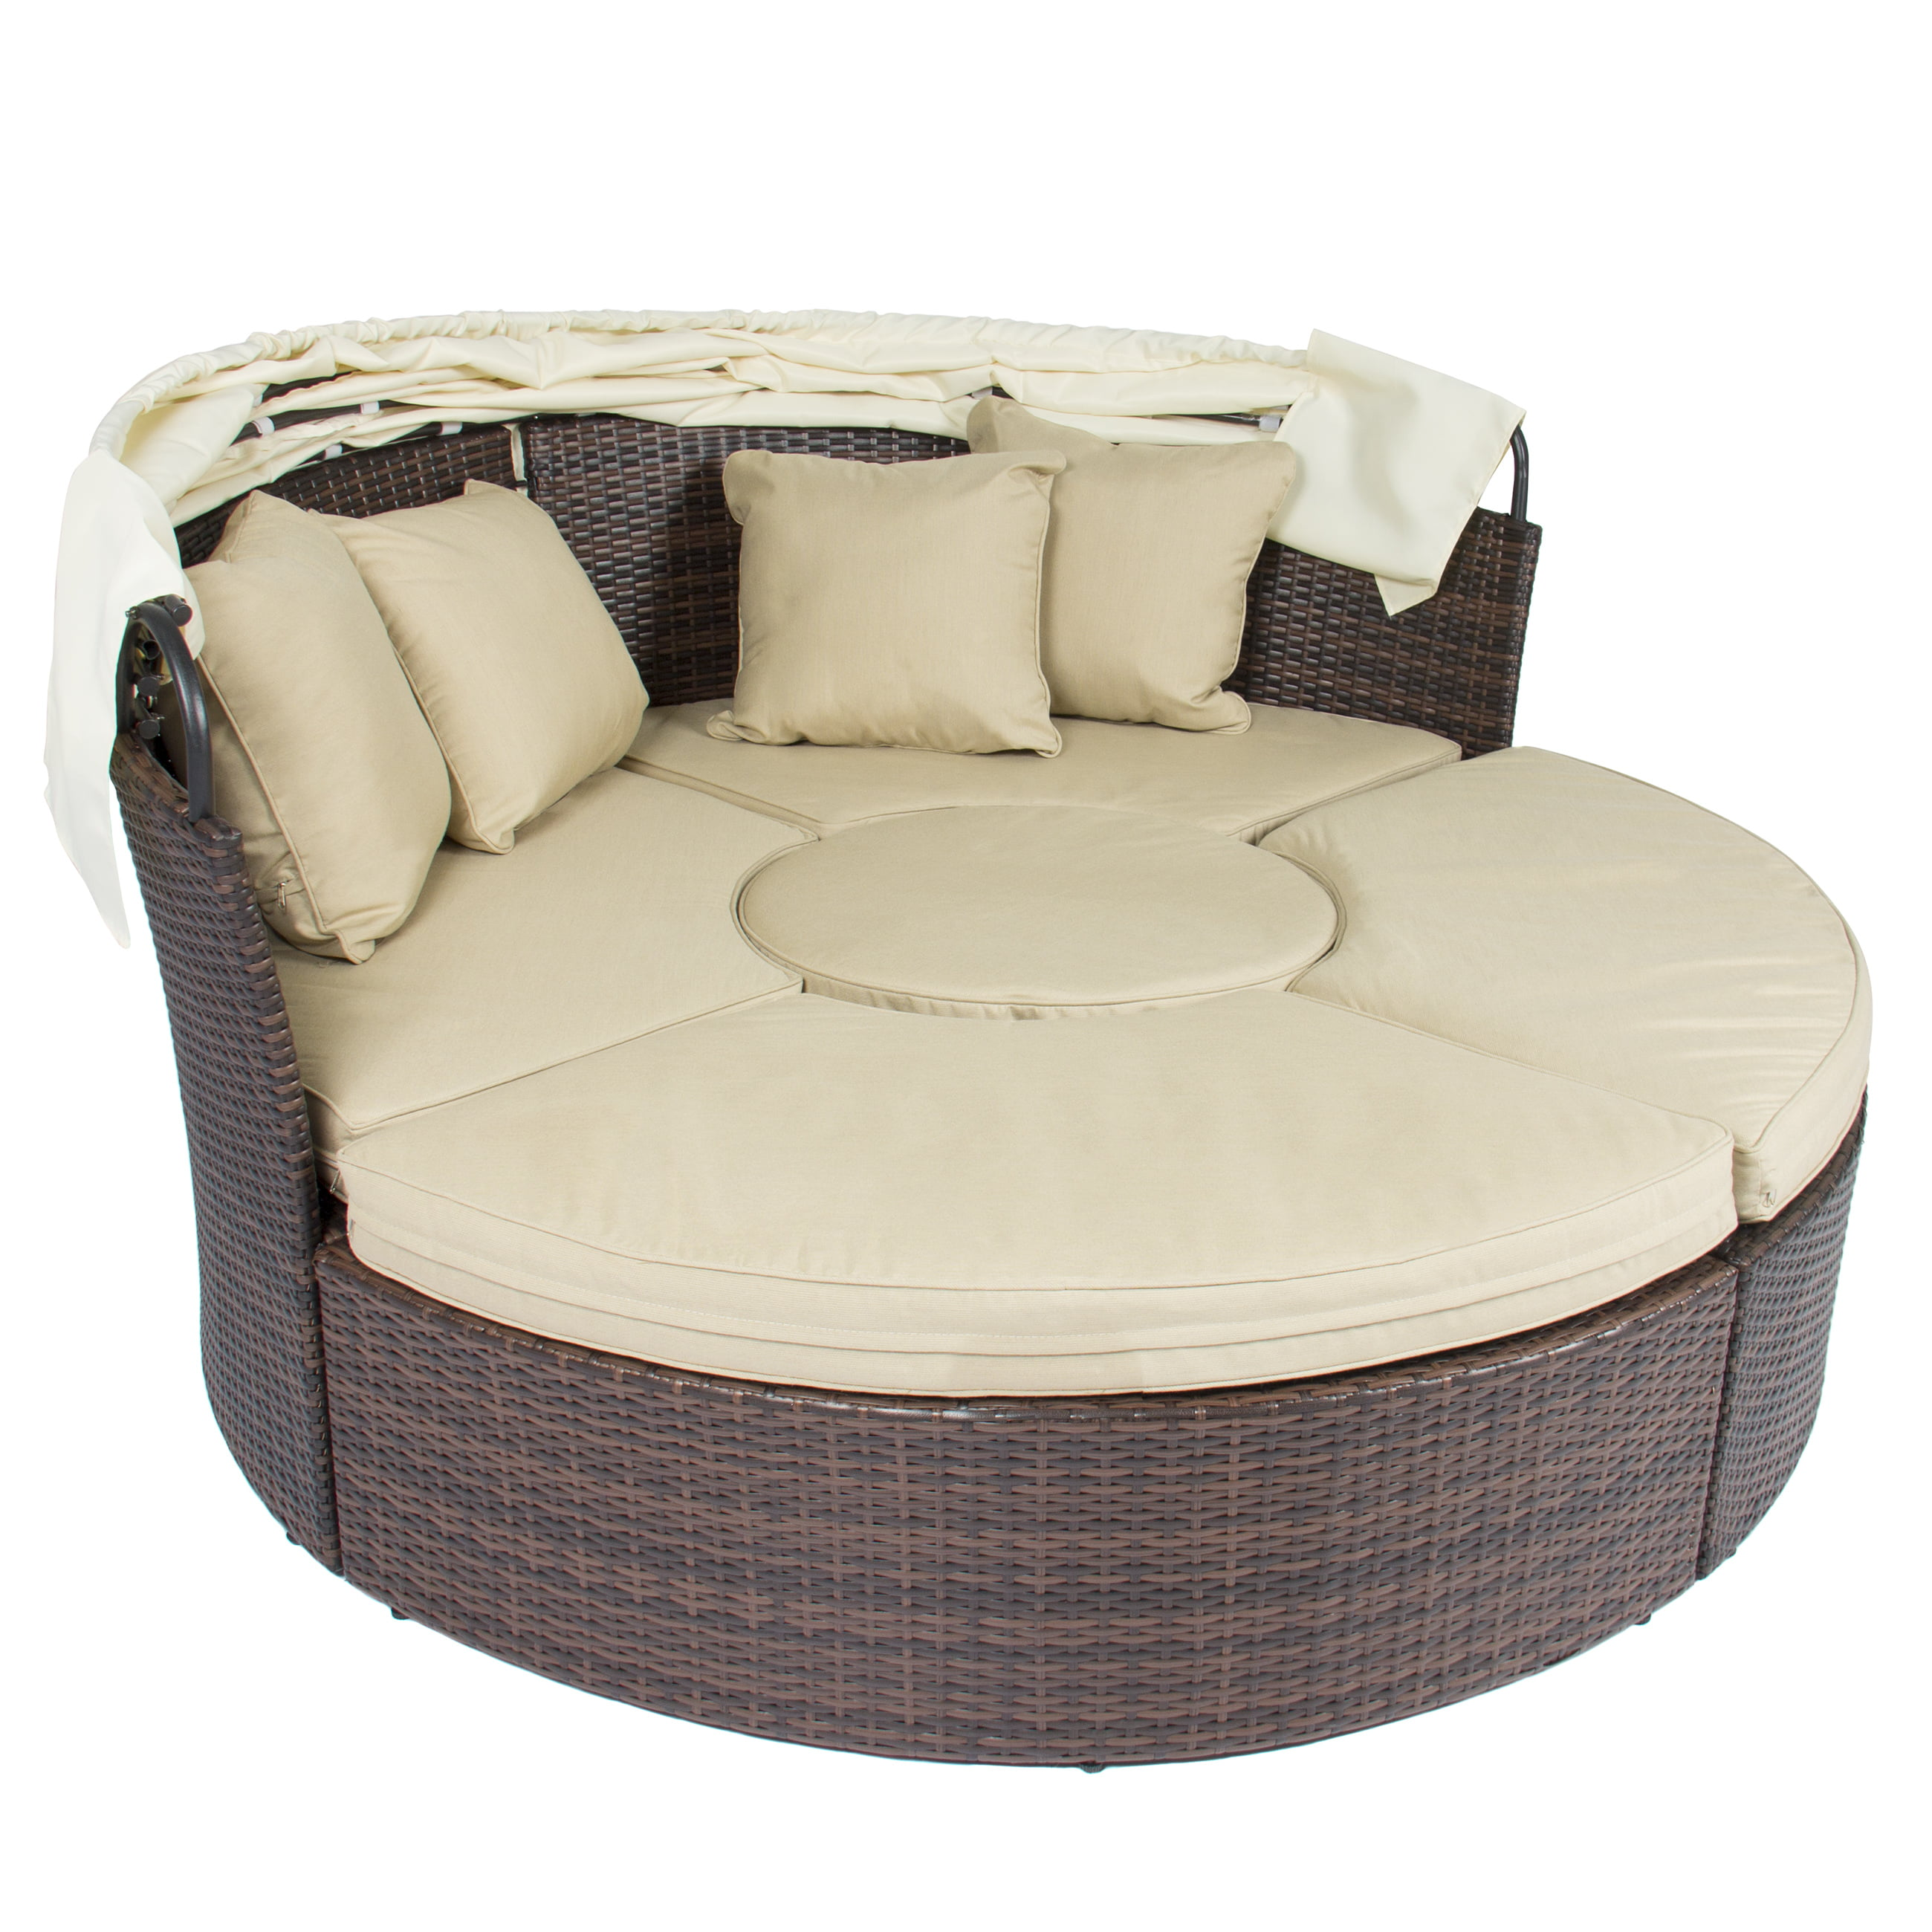 Outdoor Patio Sofa Furniture Round Retractable Canopy Daybed Brown Wicker Rattan - Walmart.com  sc 1 st  Walmart.com & Outdoor Patio Sofa Furniture Round Retractable Canopy Daybed Brown ...